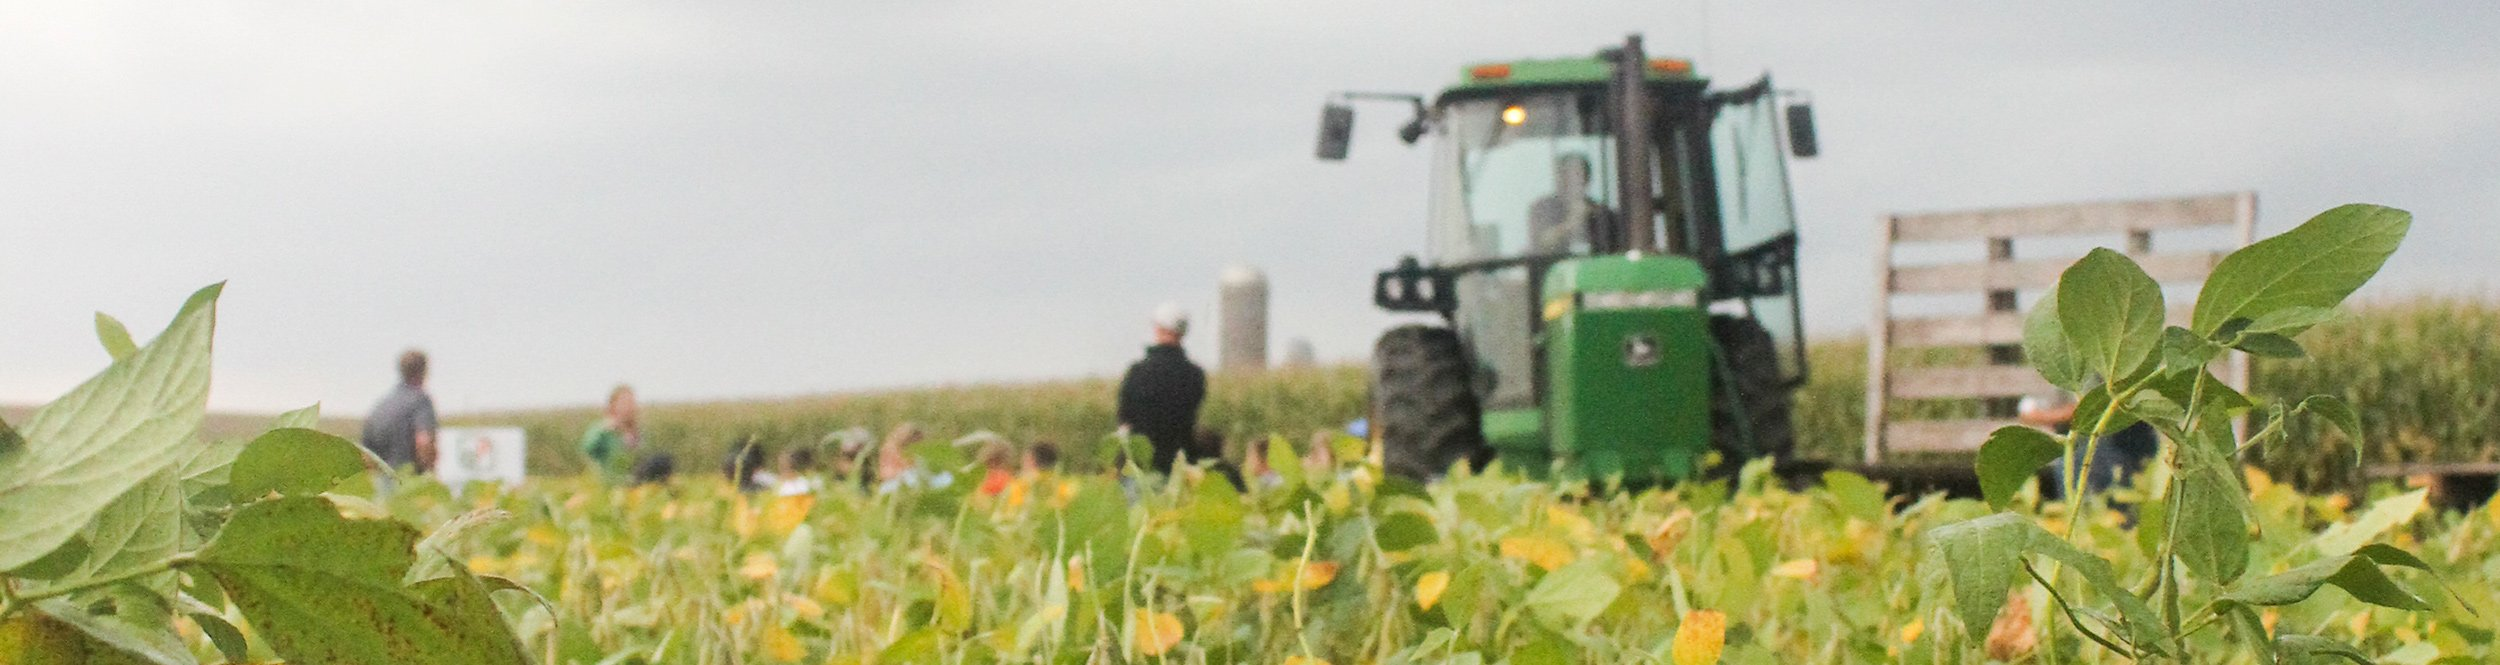 Several men and a tractor in a soybean field.